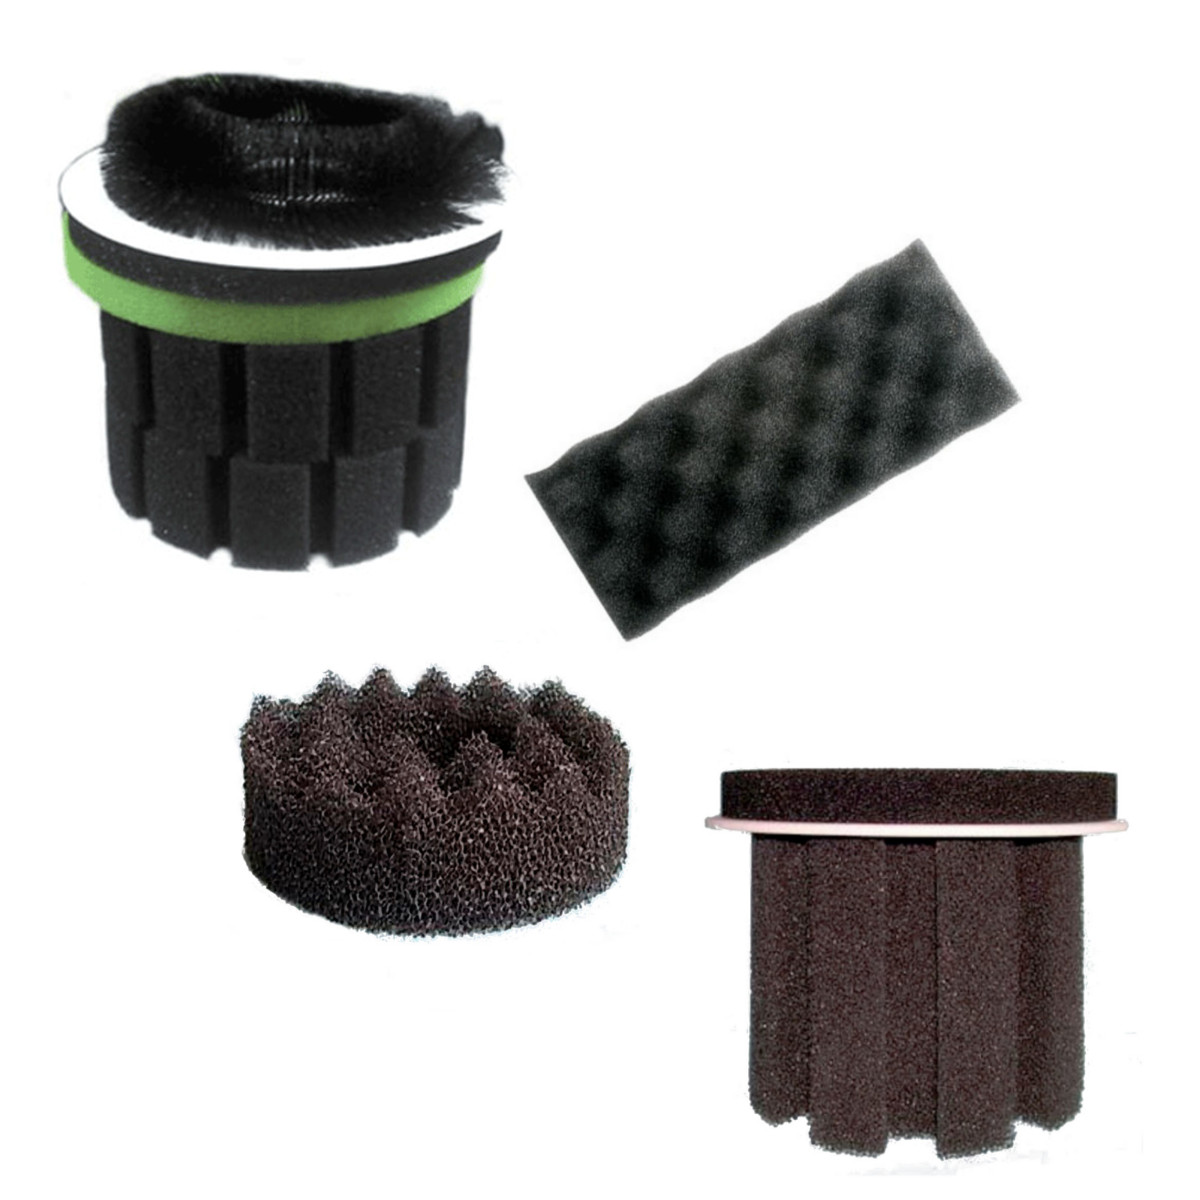 Fish mate genuine pond filter foam media replacement spare for Fish pond filter foam